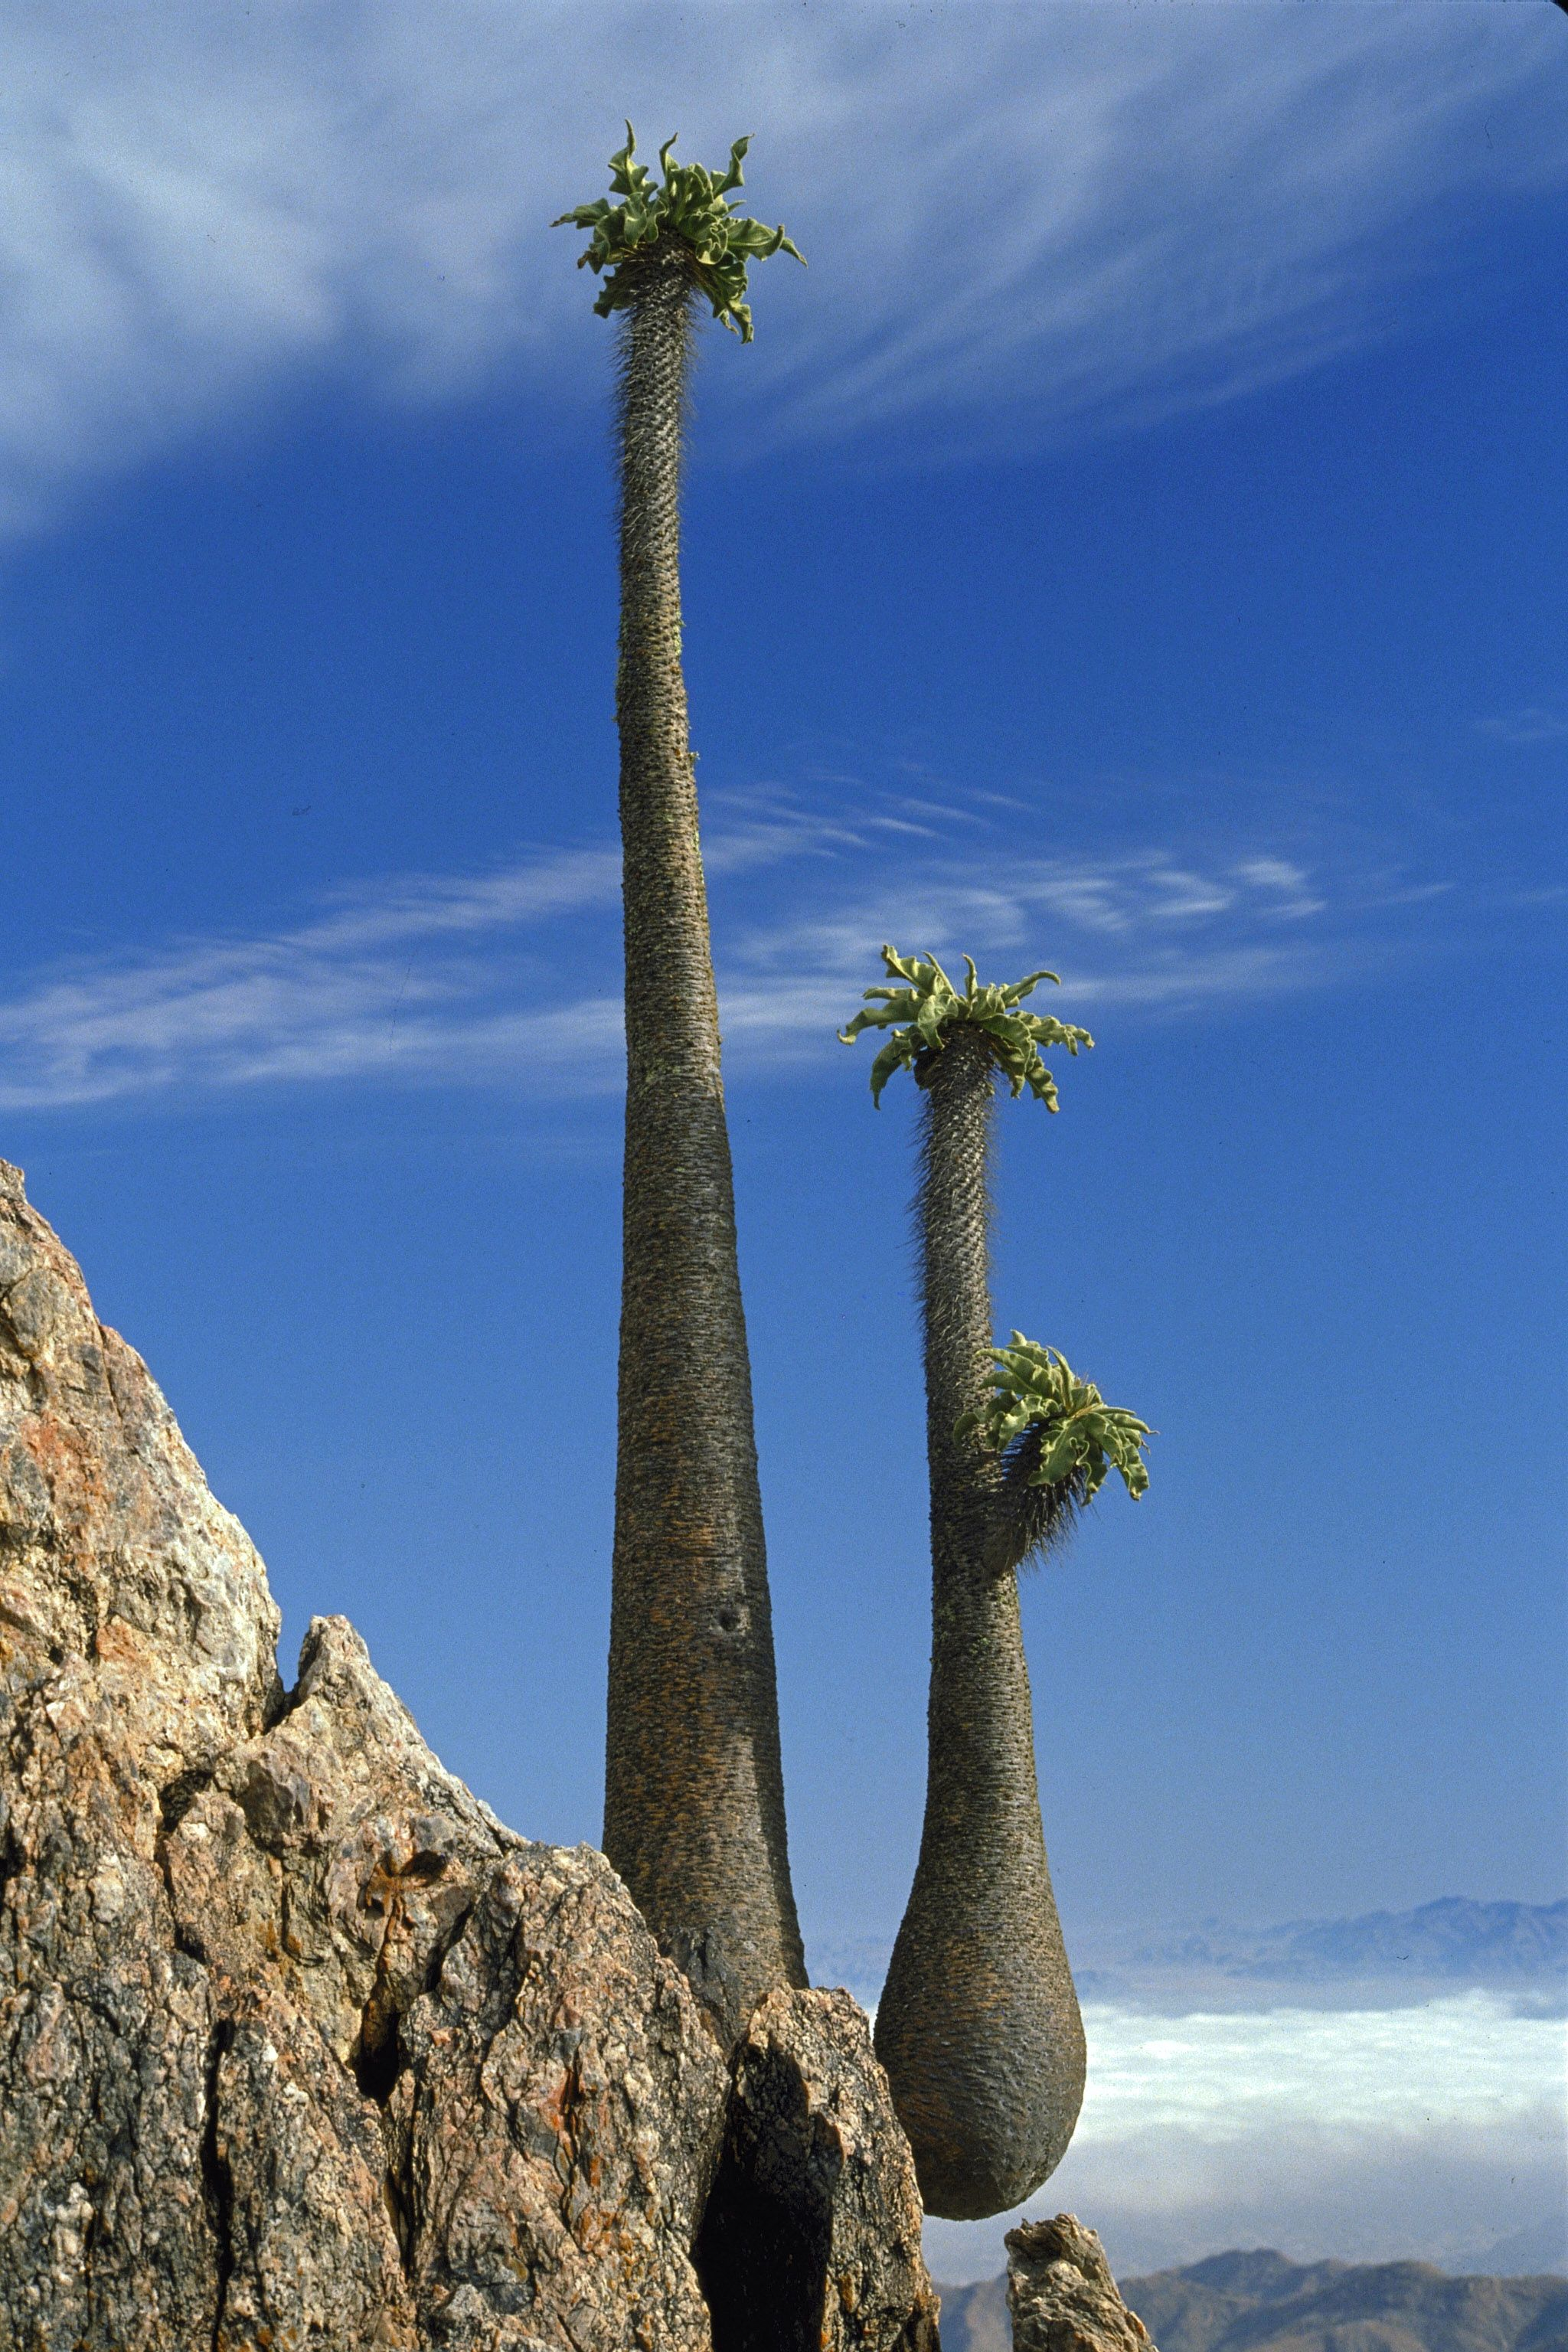 Halfmens trees in the Richtersveld National Park, Northern